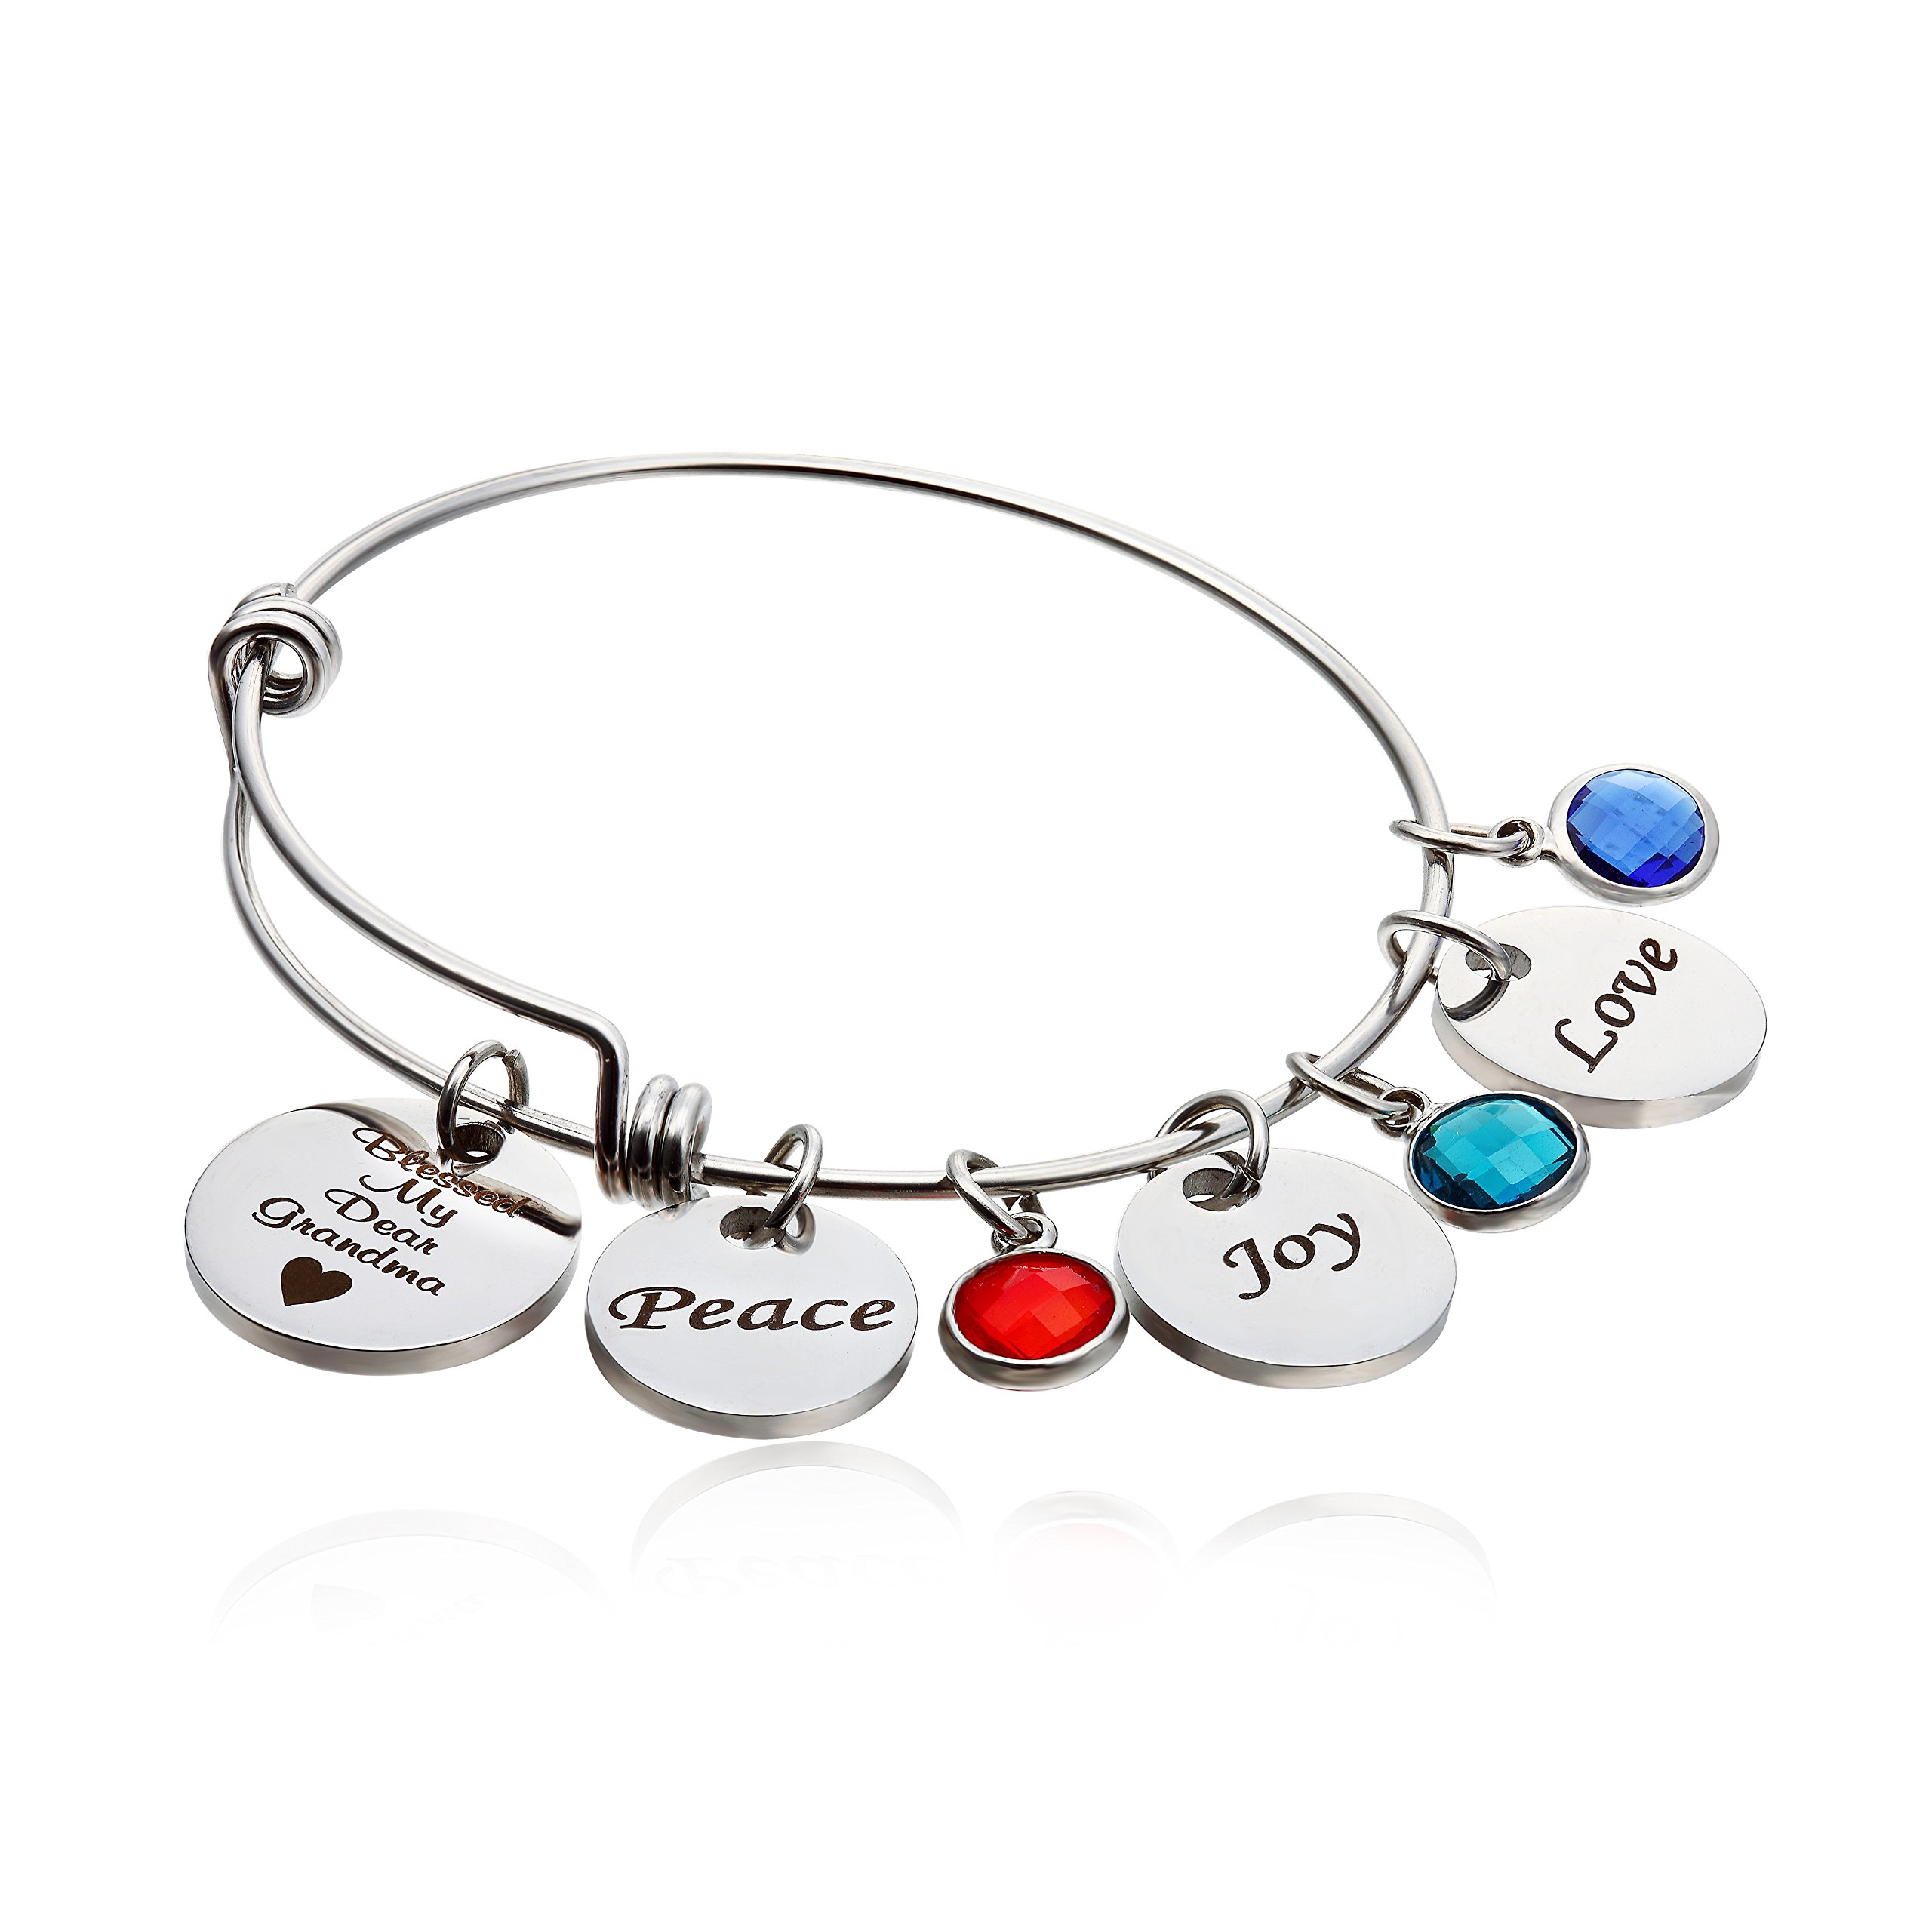 NBE Collection Grandma Bracelet With Birthstones, Blessed Grandma Jewelry Engraved Peace, Joy,Love Gifts for Grandmother (Grandma bracelet)